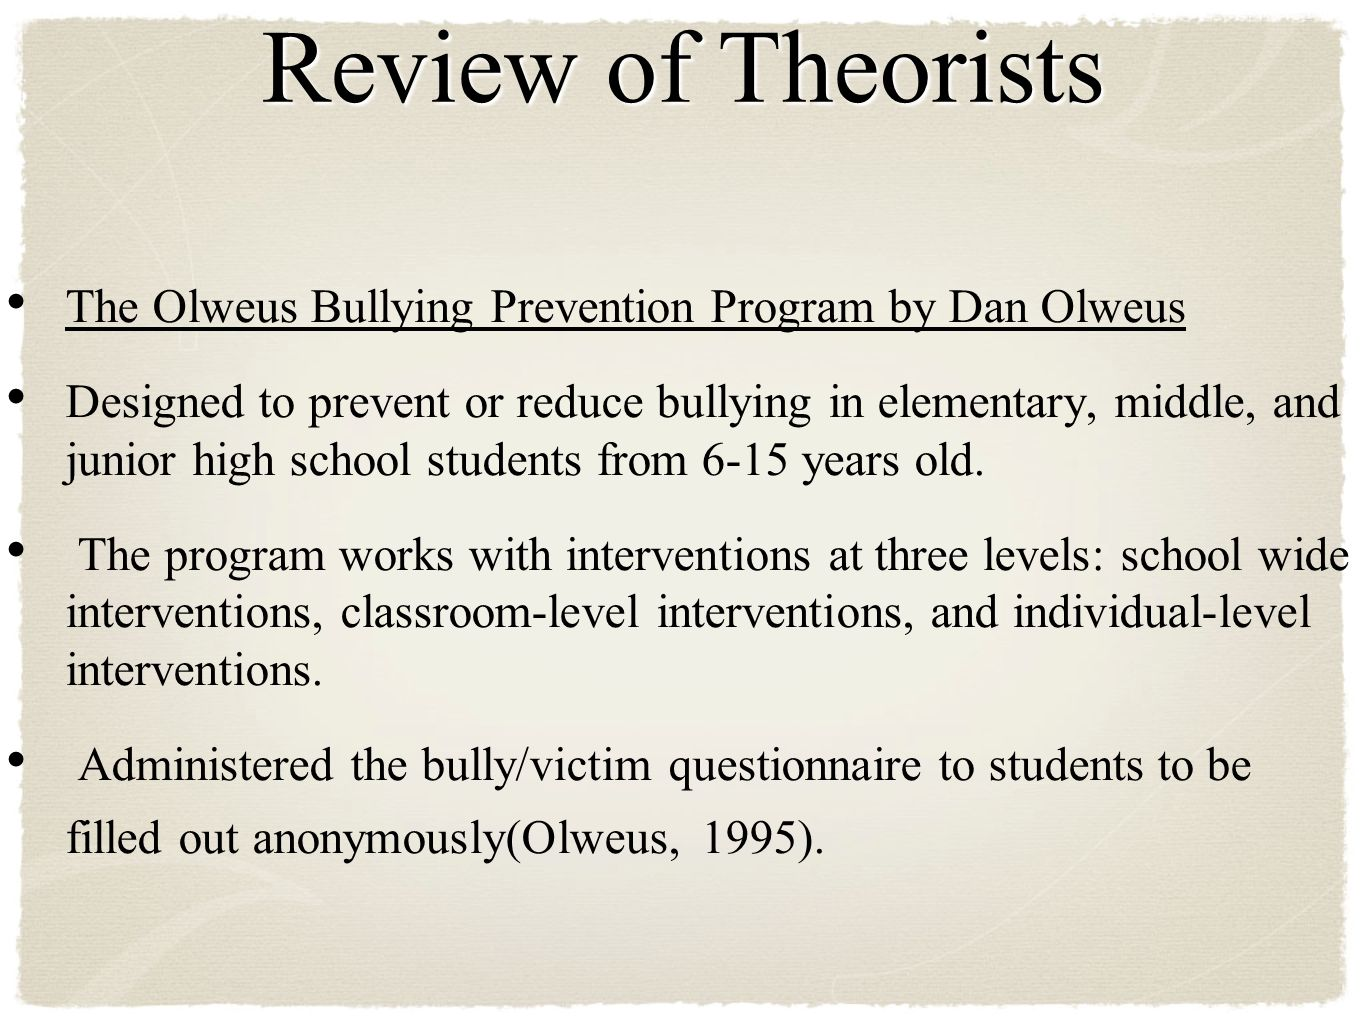 bullying prevention programs essay Free essay: one of the most significant of those problems is bullying (macfarlane & mcpherson, 2004) more than 160,000 children avoid school each day.